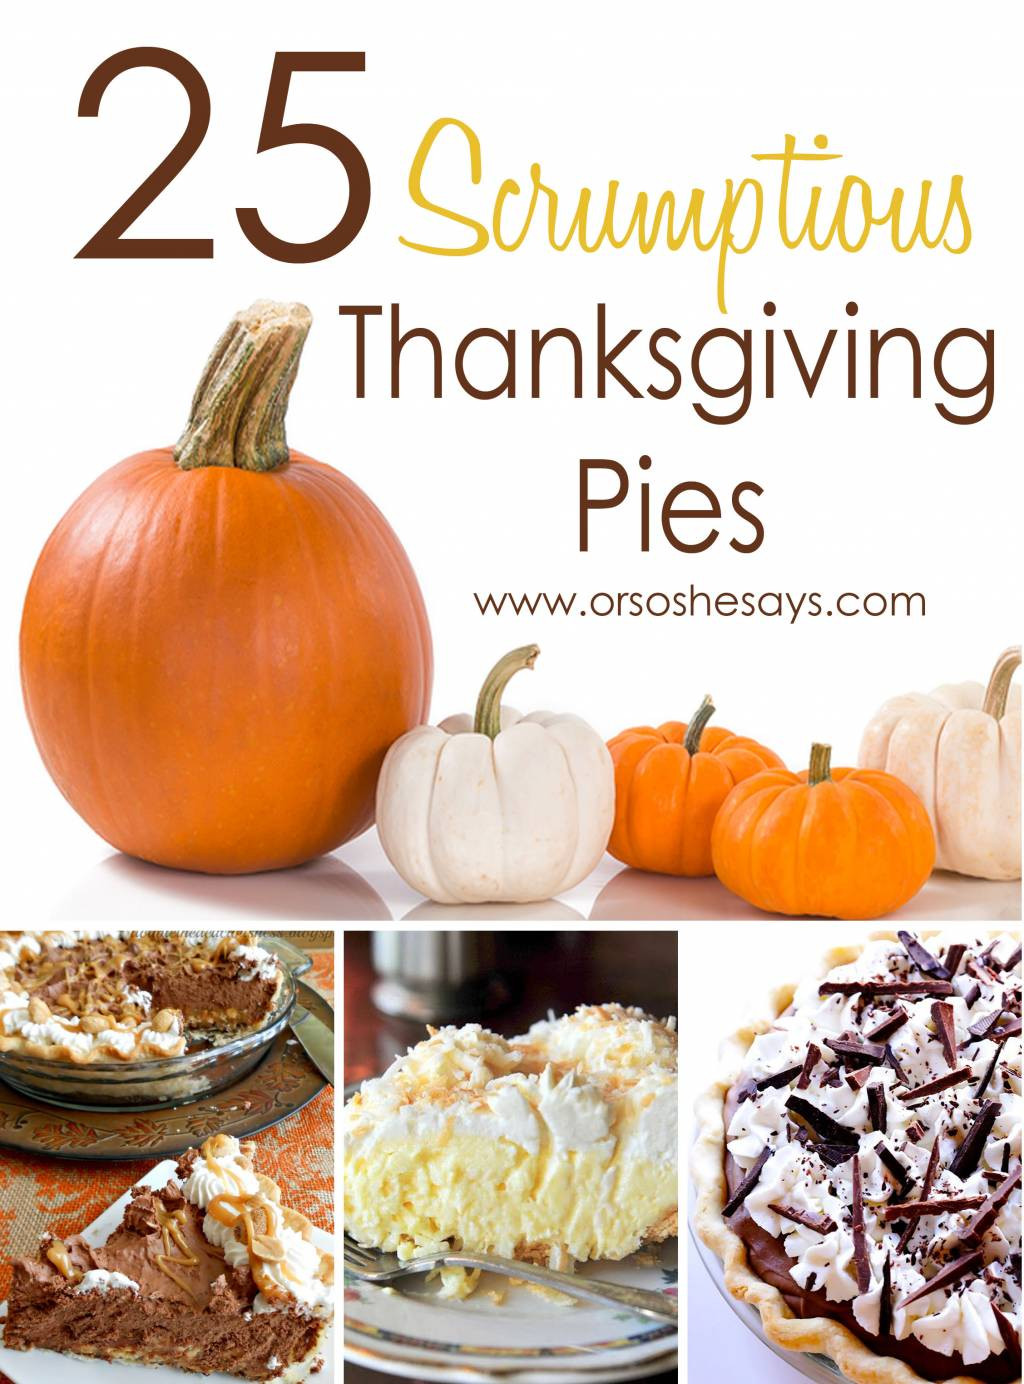 Best Pies For Thanksgiving  25 Scrumptious Thanksgiving Pies she Mariah so she